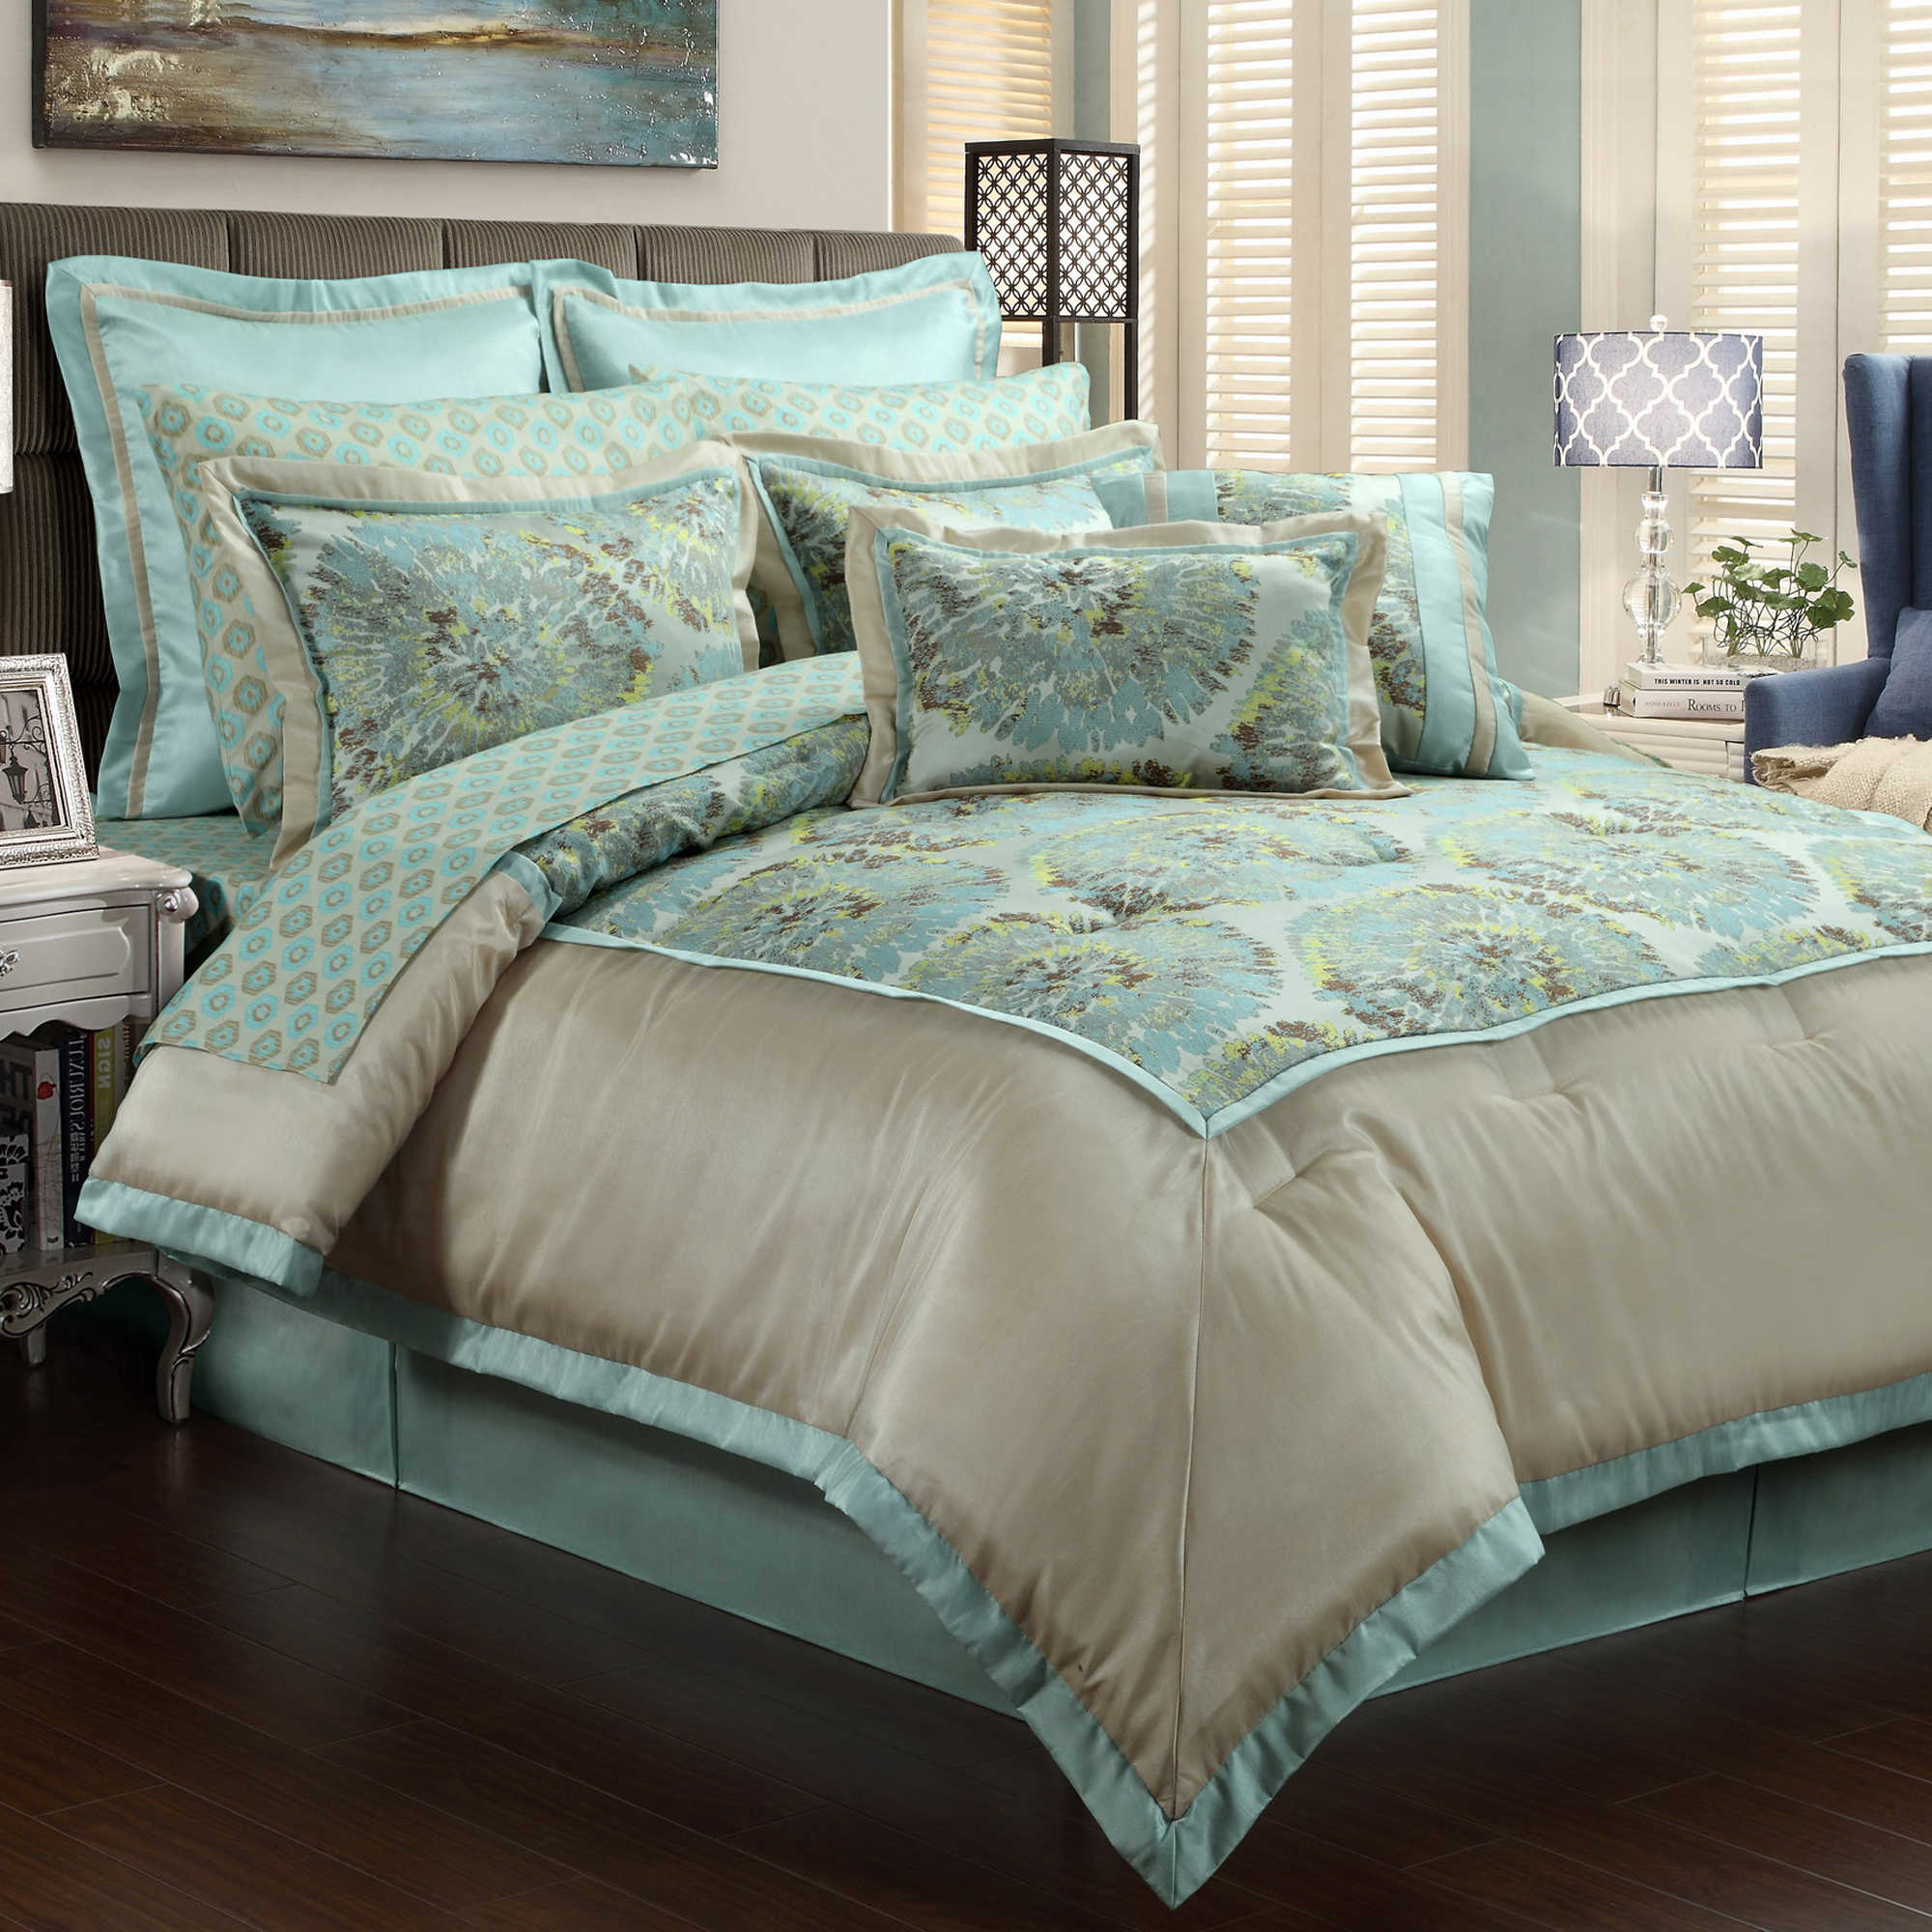 Bedroom Sets Bed Bath And Beyond bed bath and beyond bedroom sets - best bedroom 2017